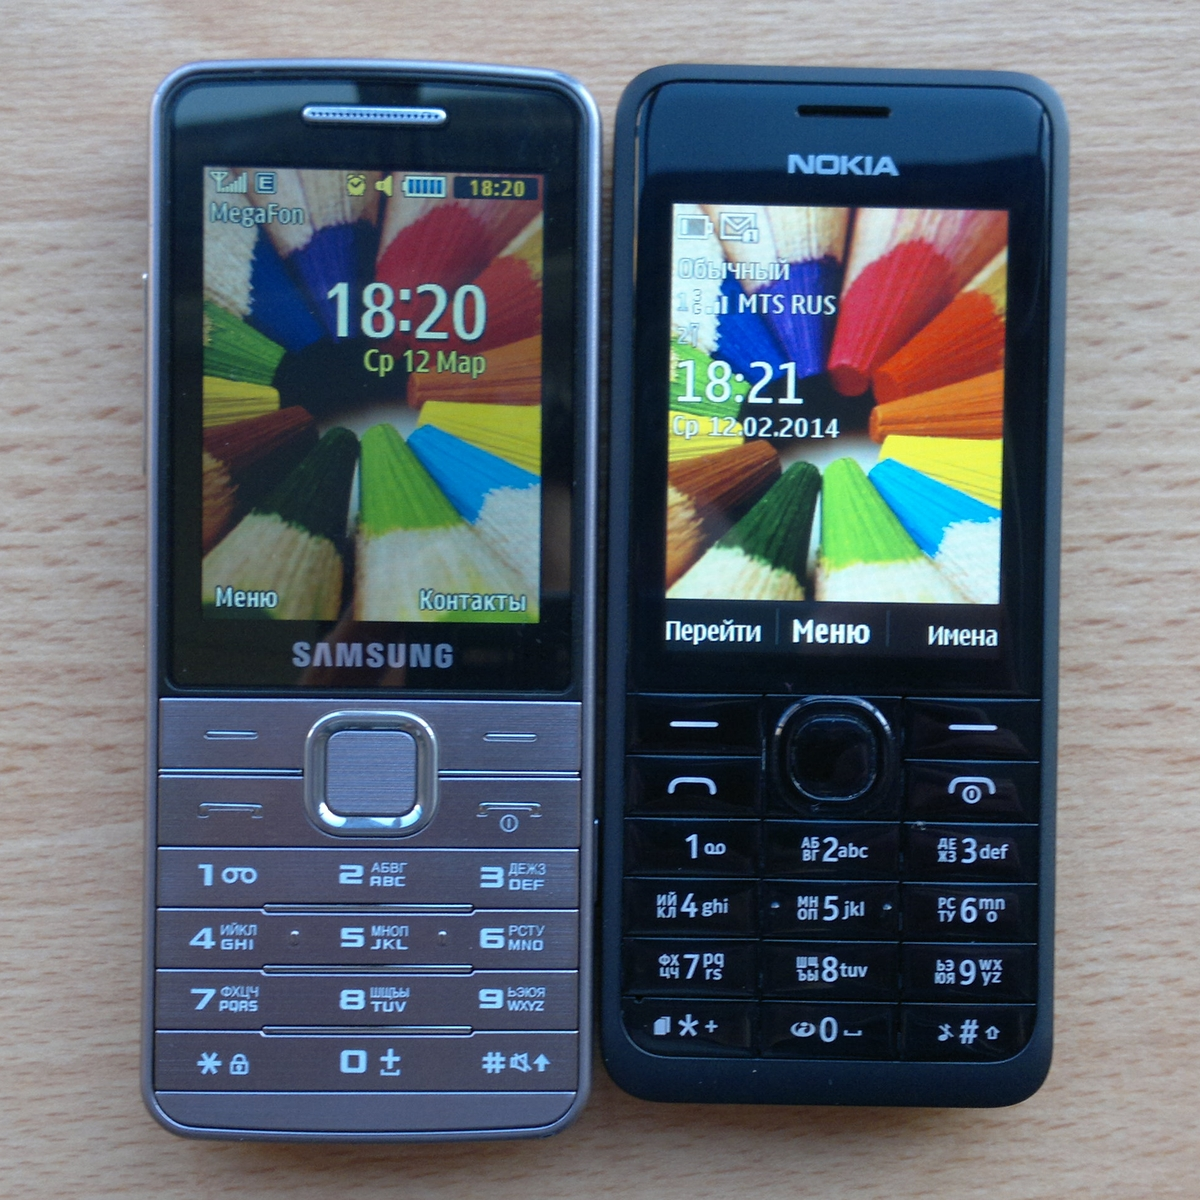 samsung nokia Nokia x vs samsung galaxy a6 mobile comparison - compare nokia x vs samsung galaxy a6 price in india, camera, size and other specifications at gadgets now.